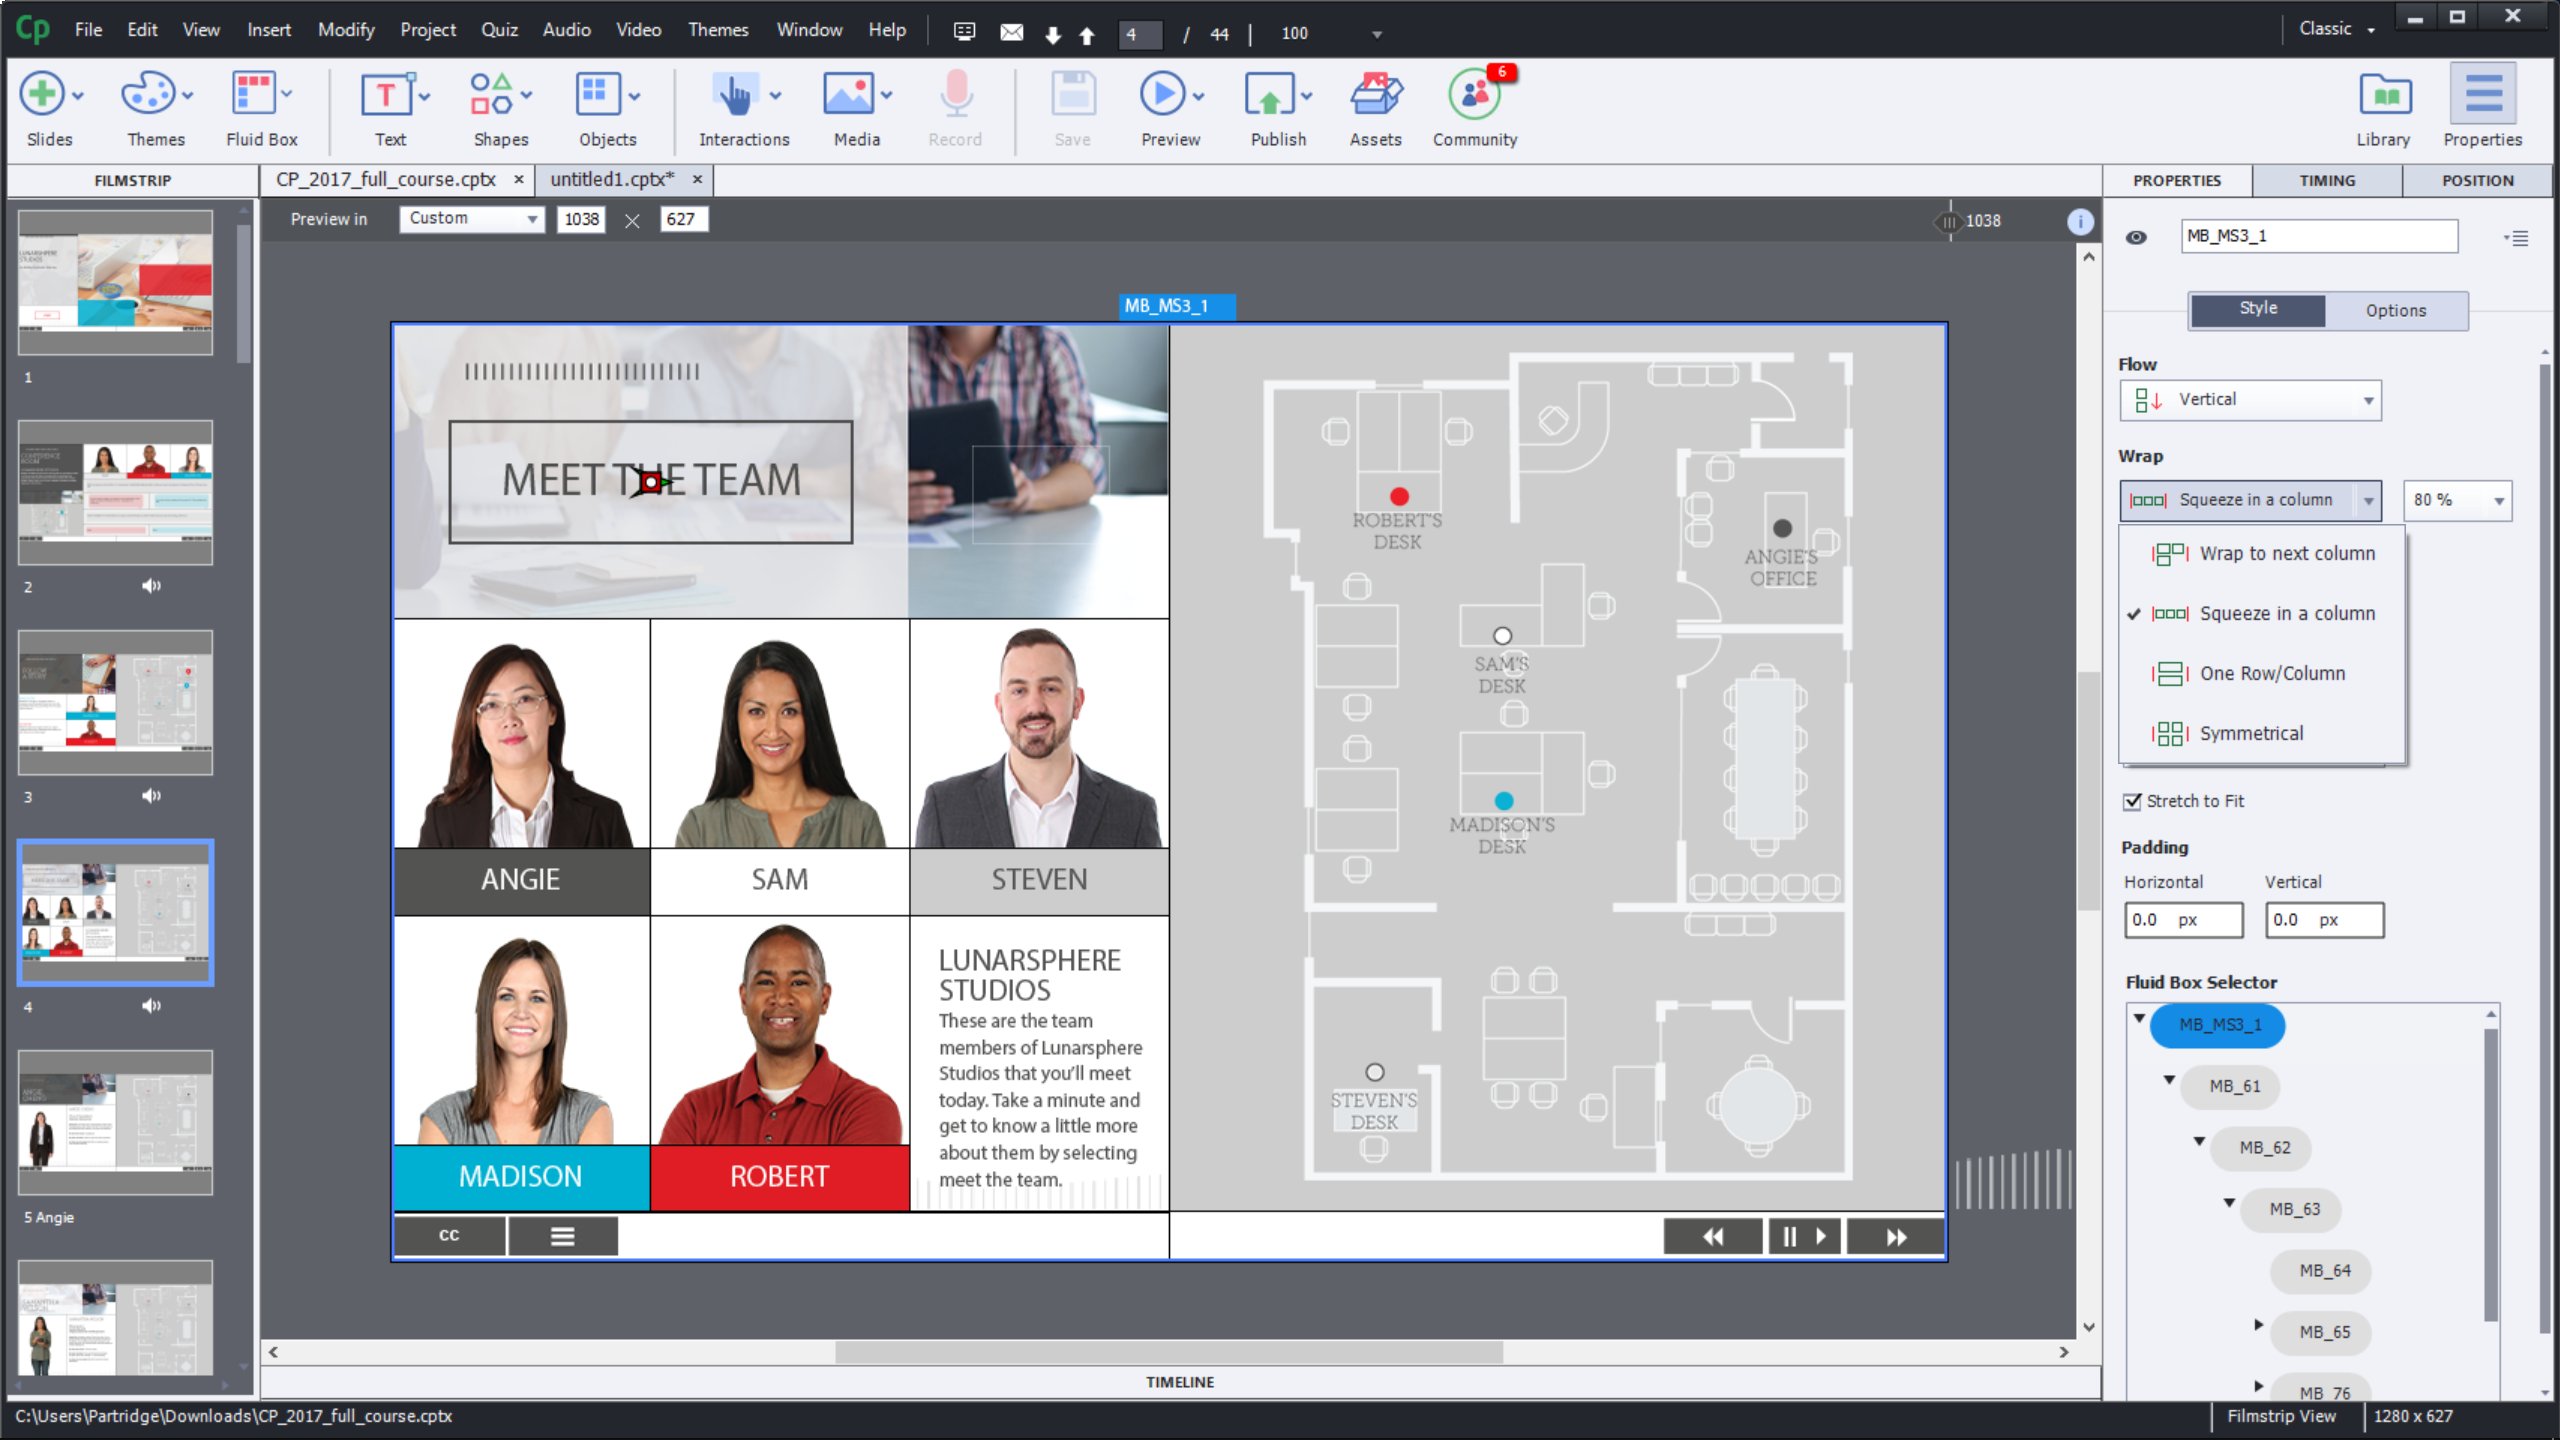 Convert your PowerPoint slides to interactive eLearning content without any programming